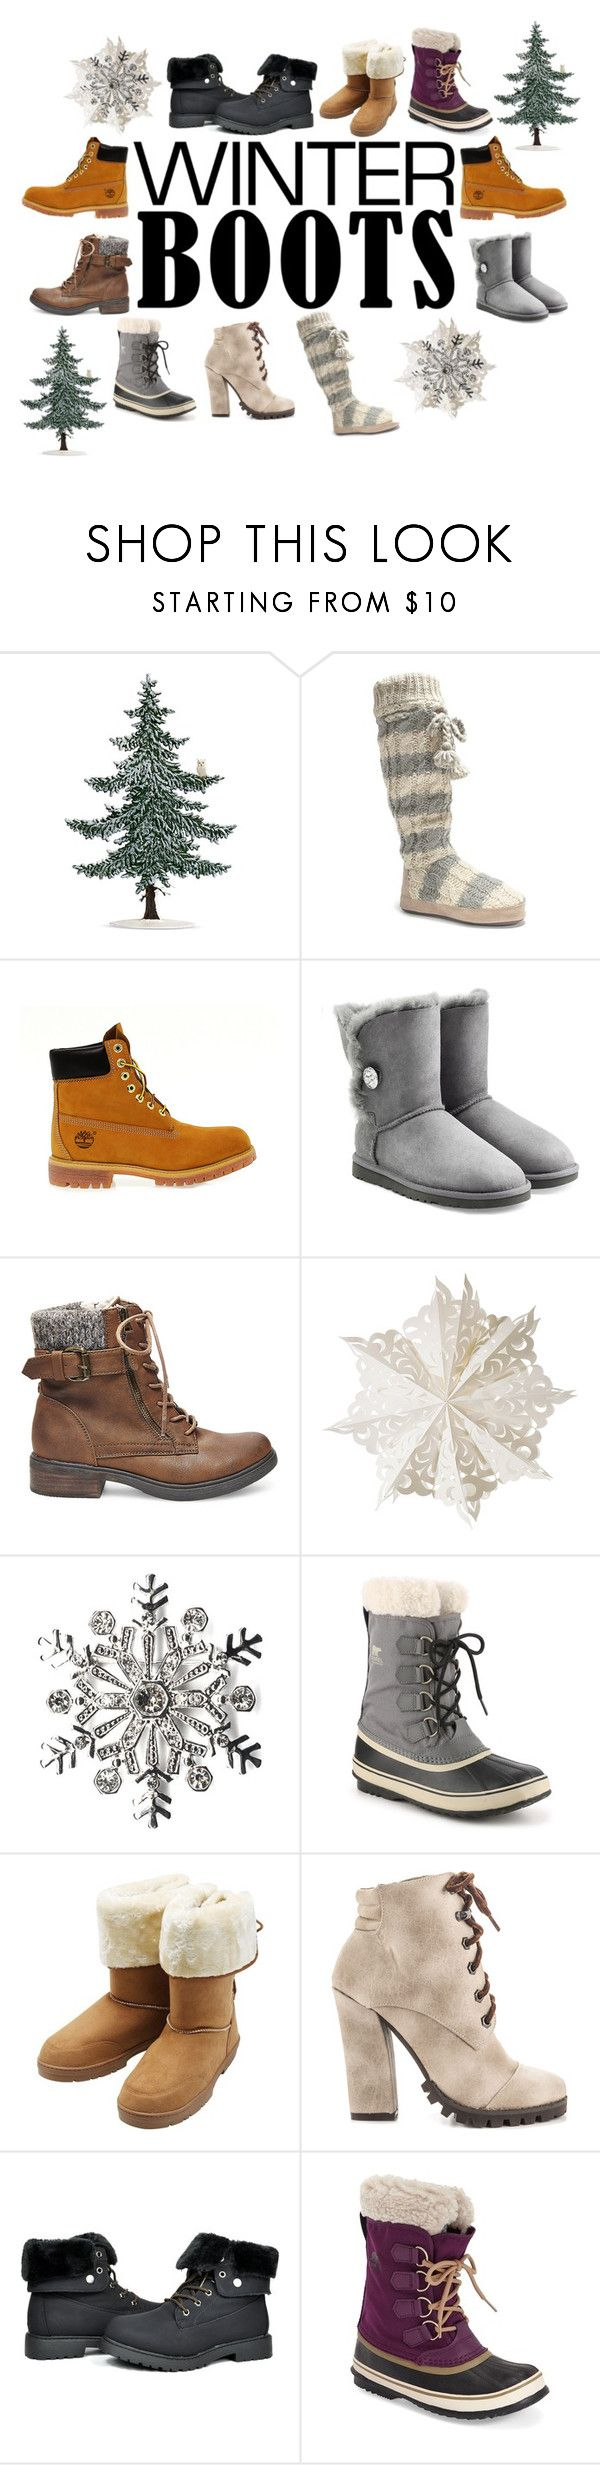 """""""Beautiful Winter Boots"""" by daphnee2ada2collier ❤ liked on Polyvore featuring Muk Luks, Timberland, UGG Australia, Steve Madden, Dot & Bo, Kim Rogers, SOREL, M&Co and Michael Antonio"""